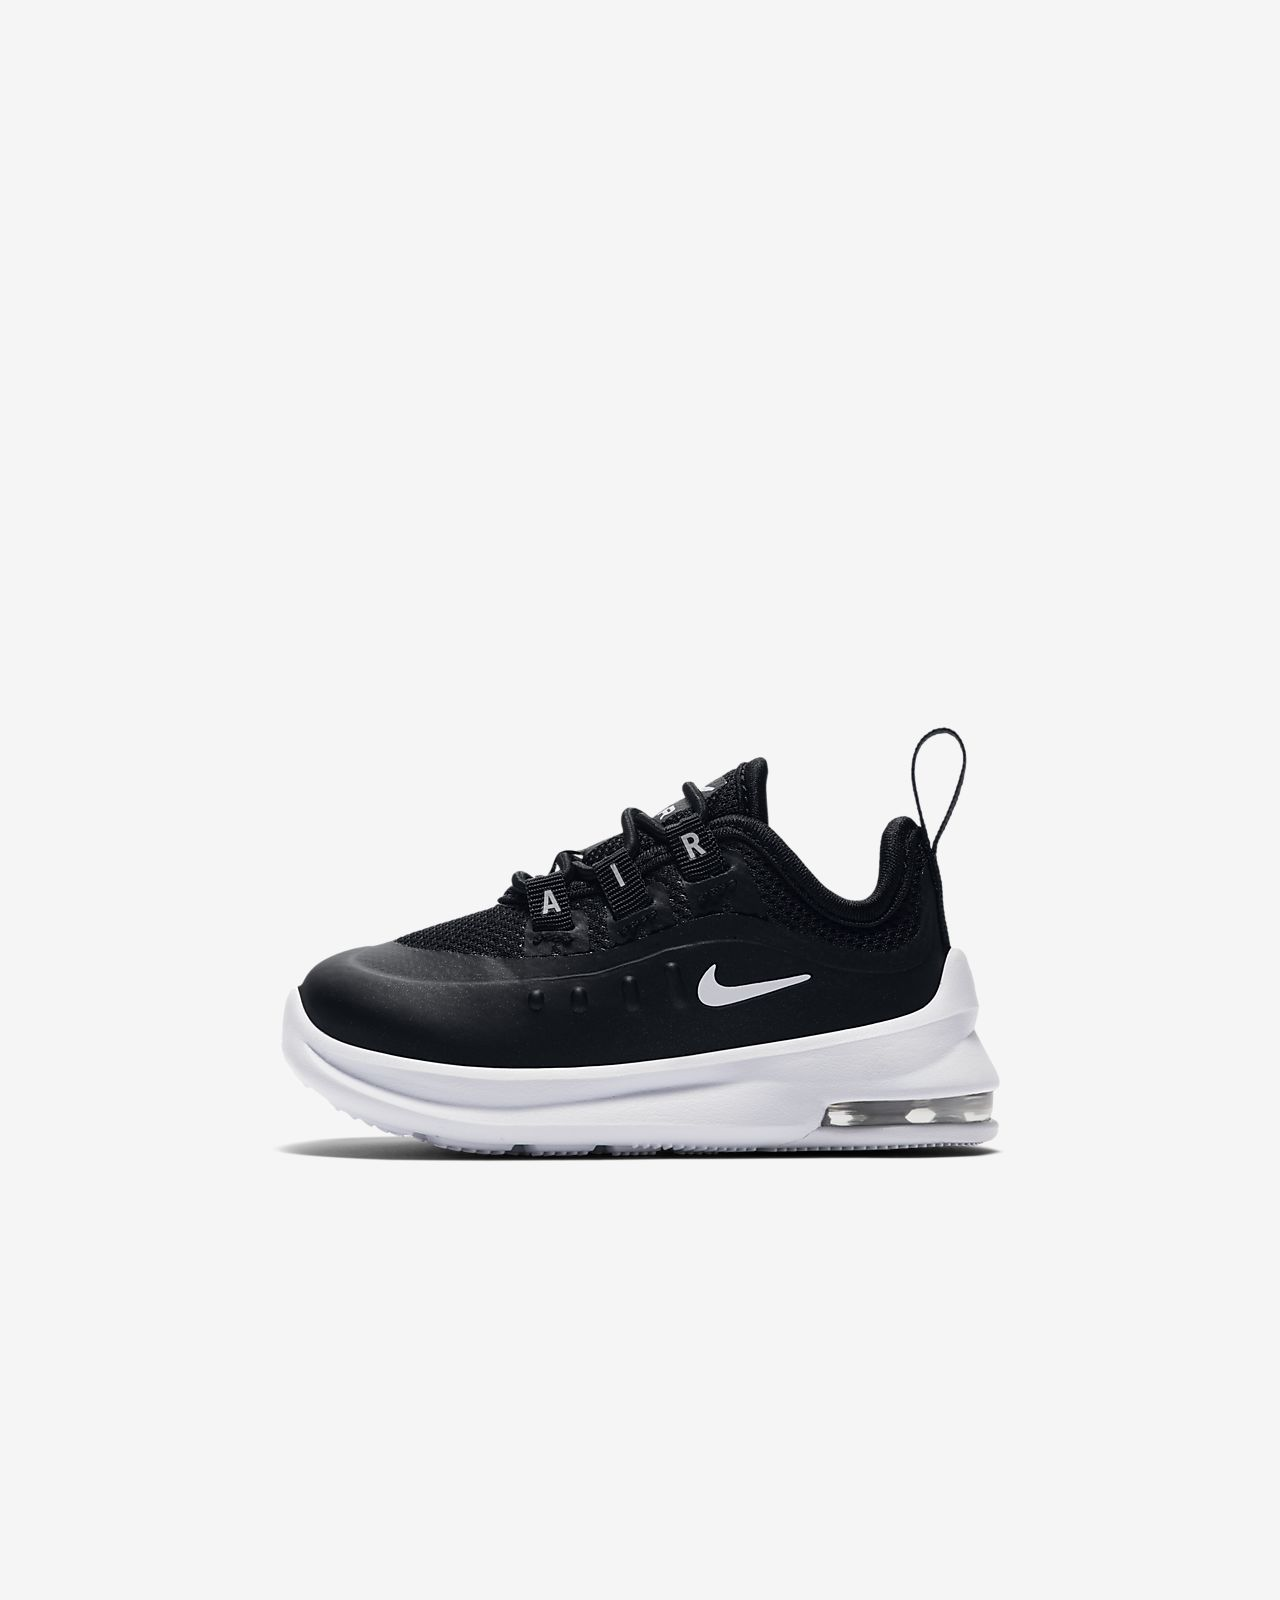 Nike Air Max Axis InfantToddler Shoe